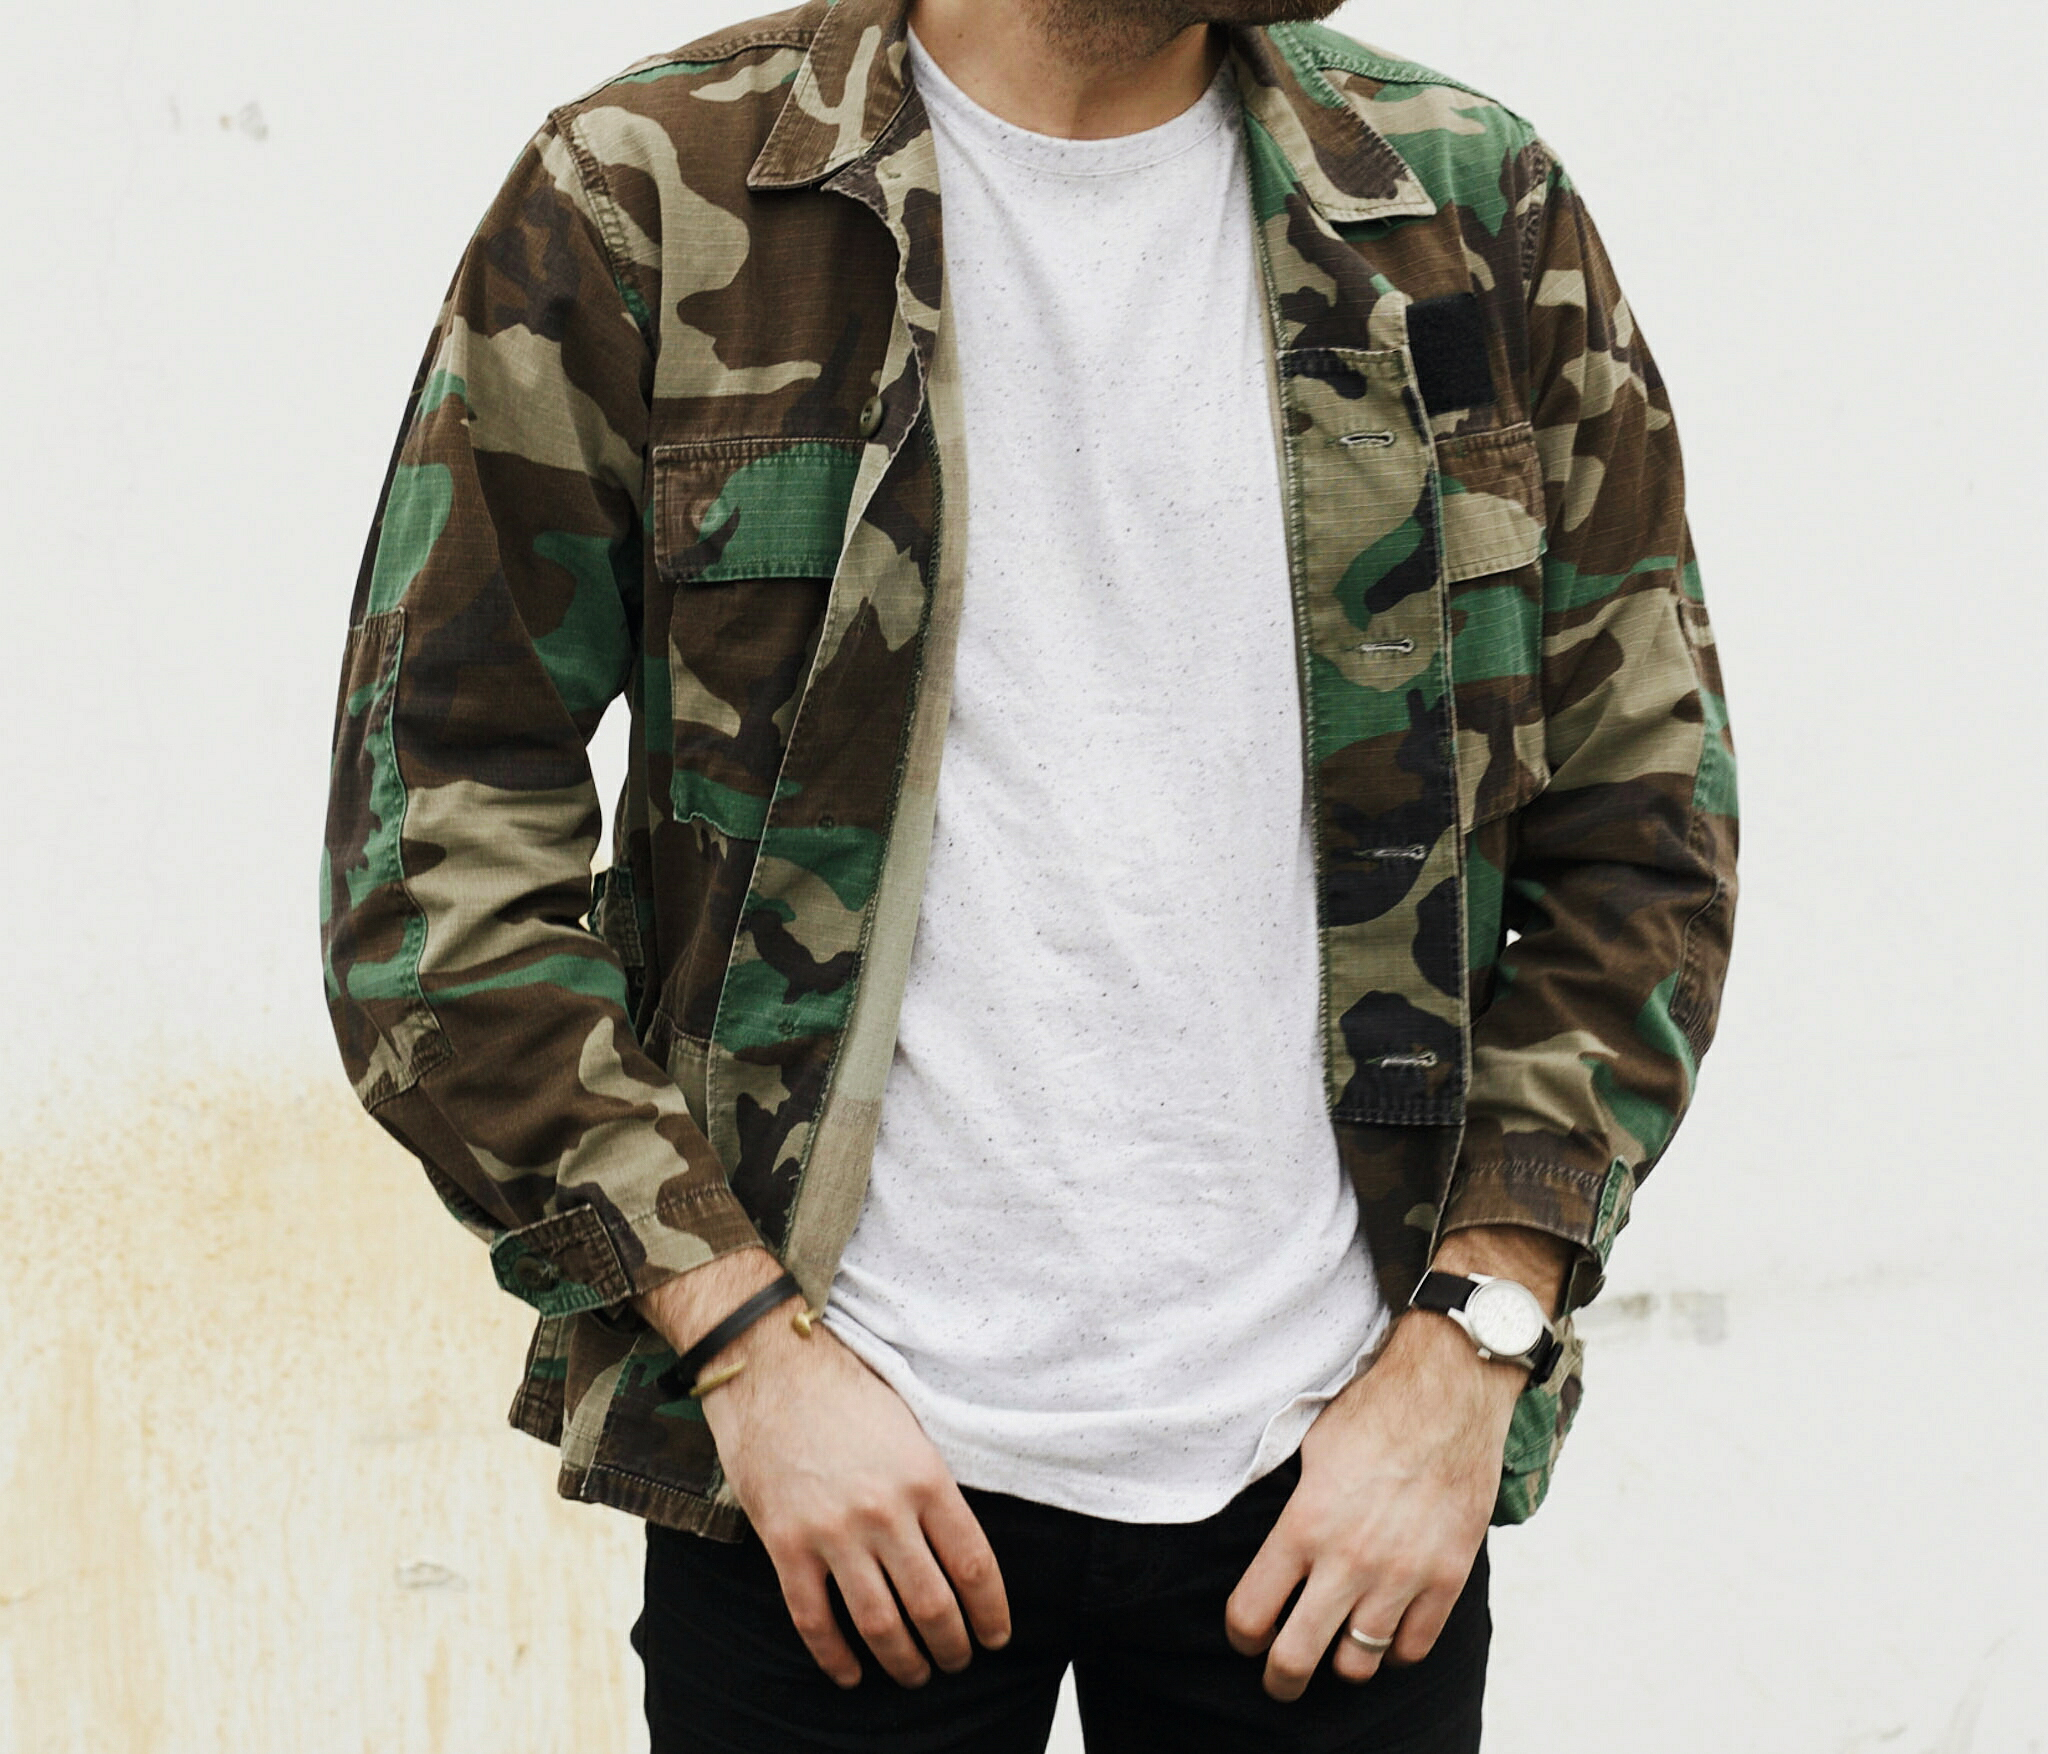 Vintage Camo Jacket and Sneakers 8